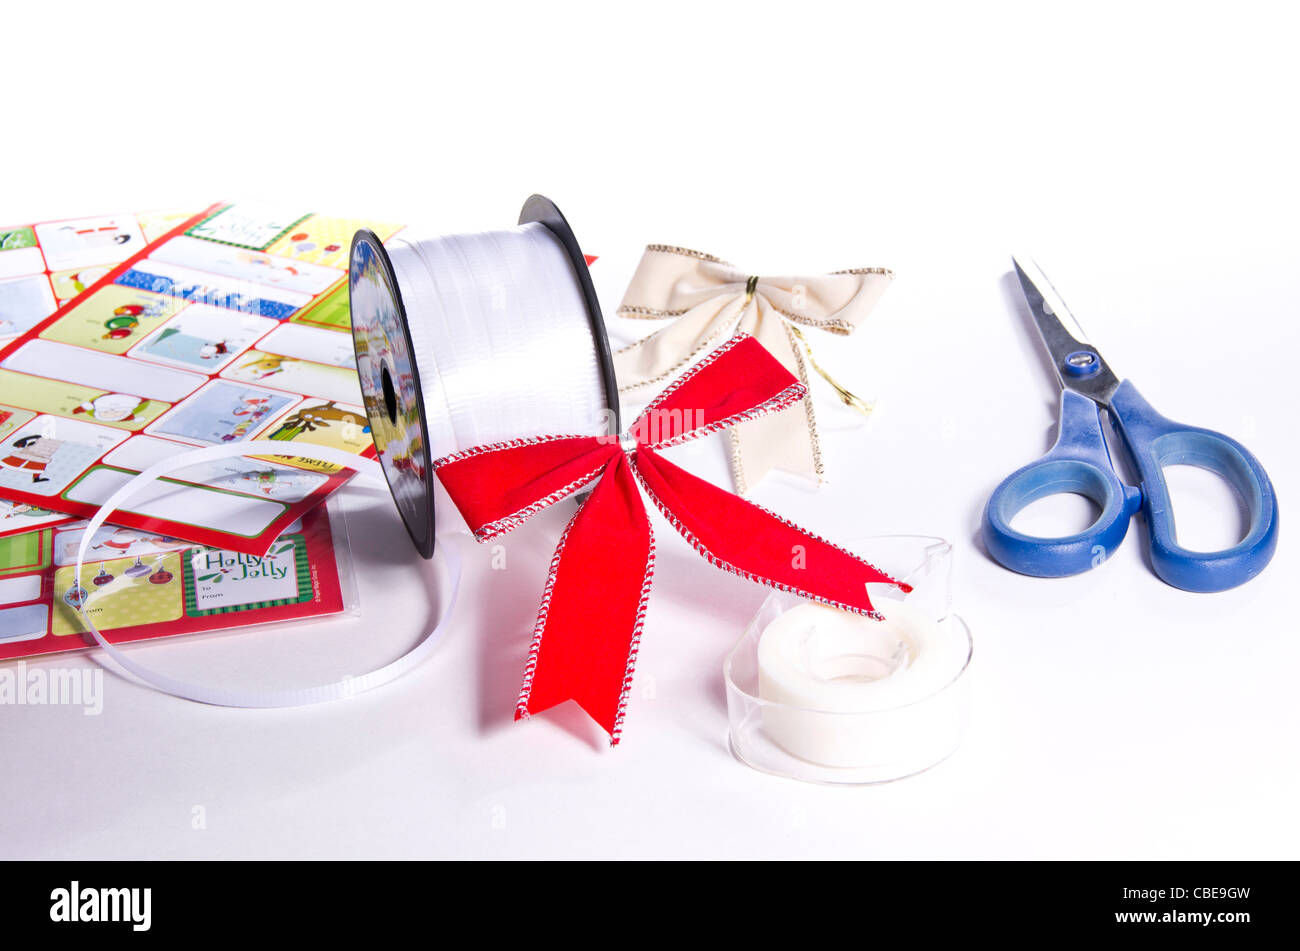 Various gift wrapping supplies including scissors, ribbon, tape, bows and gift tags. - Stock Image